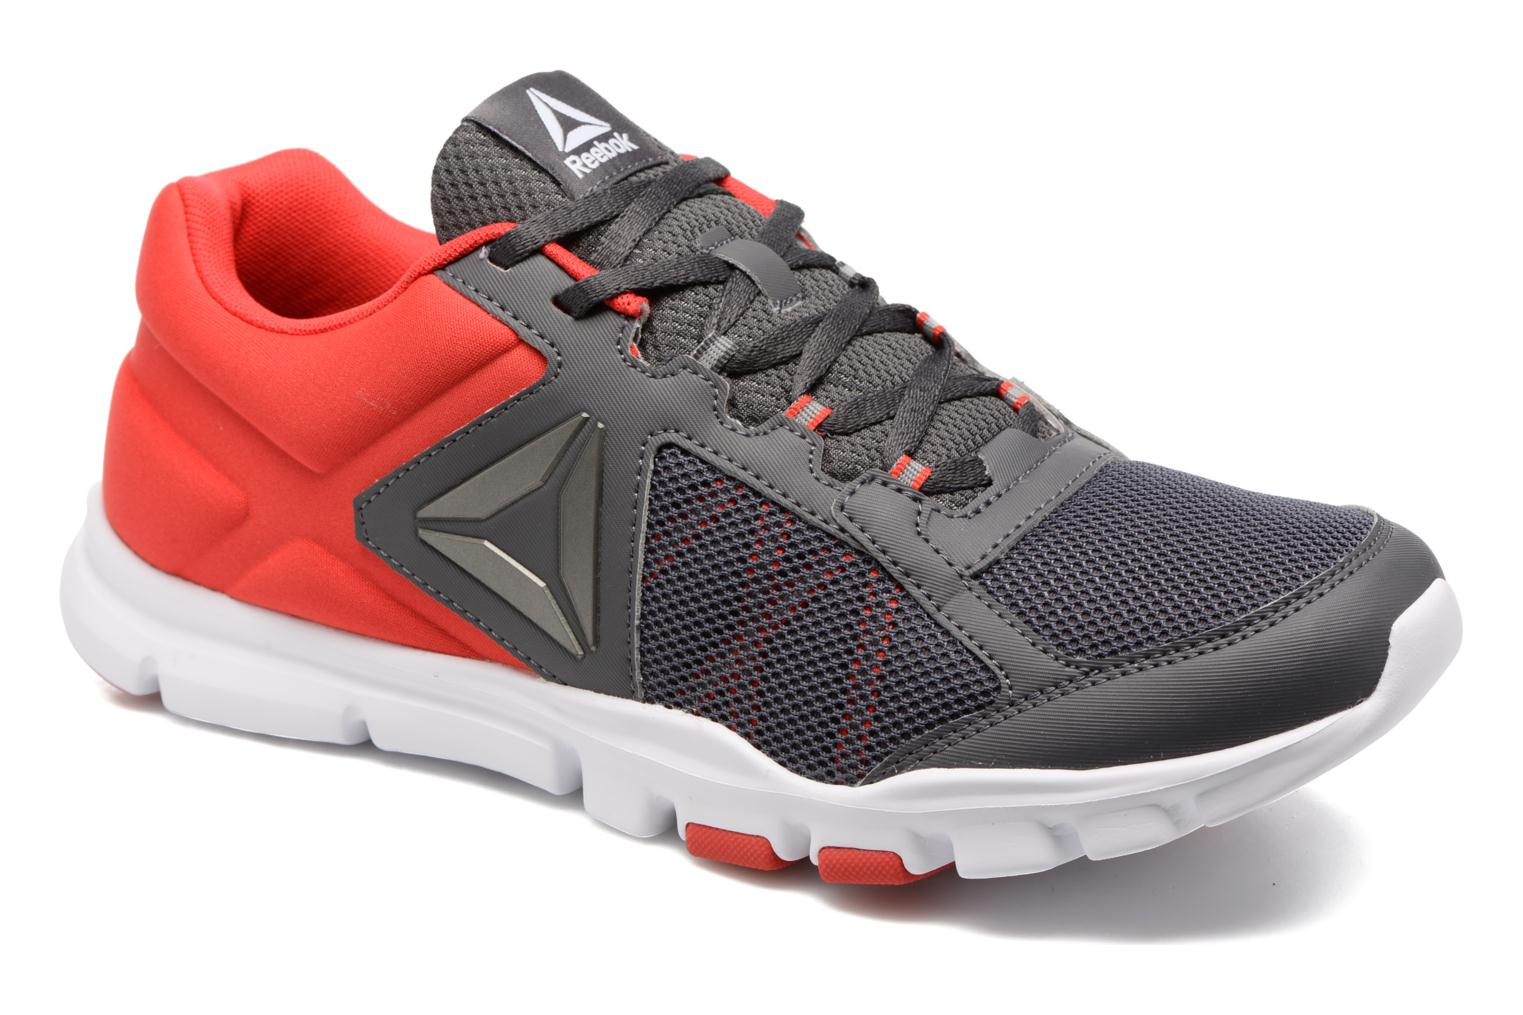 Yourflex Train 9.0 Primal Red/Ash Grey/White